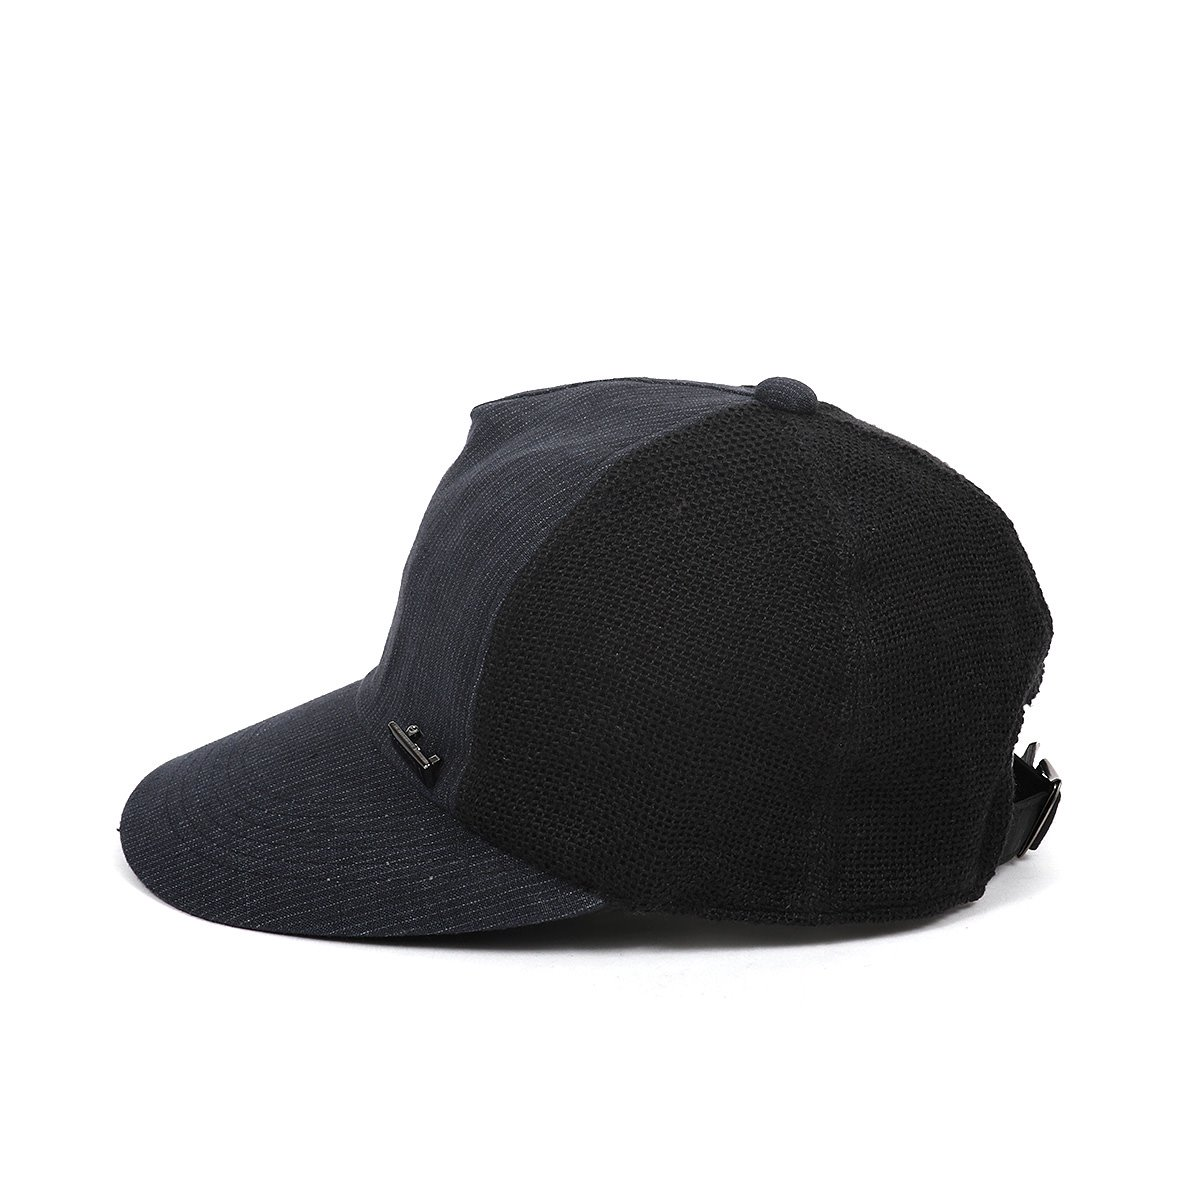 COMBINATION LINEN WIDECAP 詳細画像3